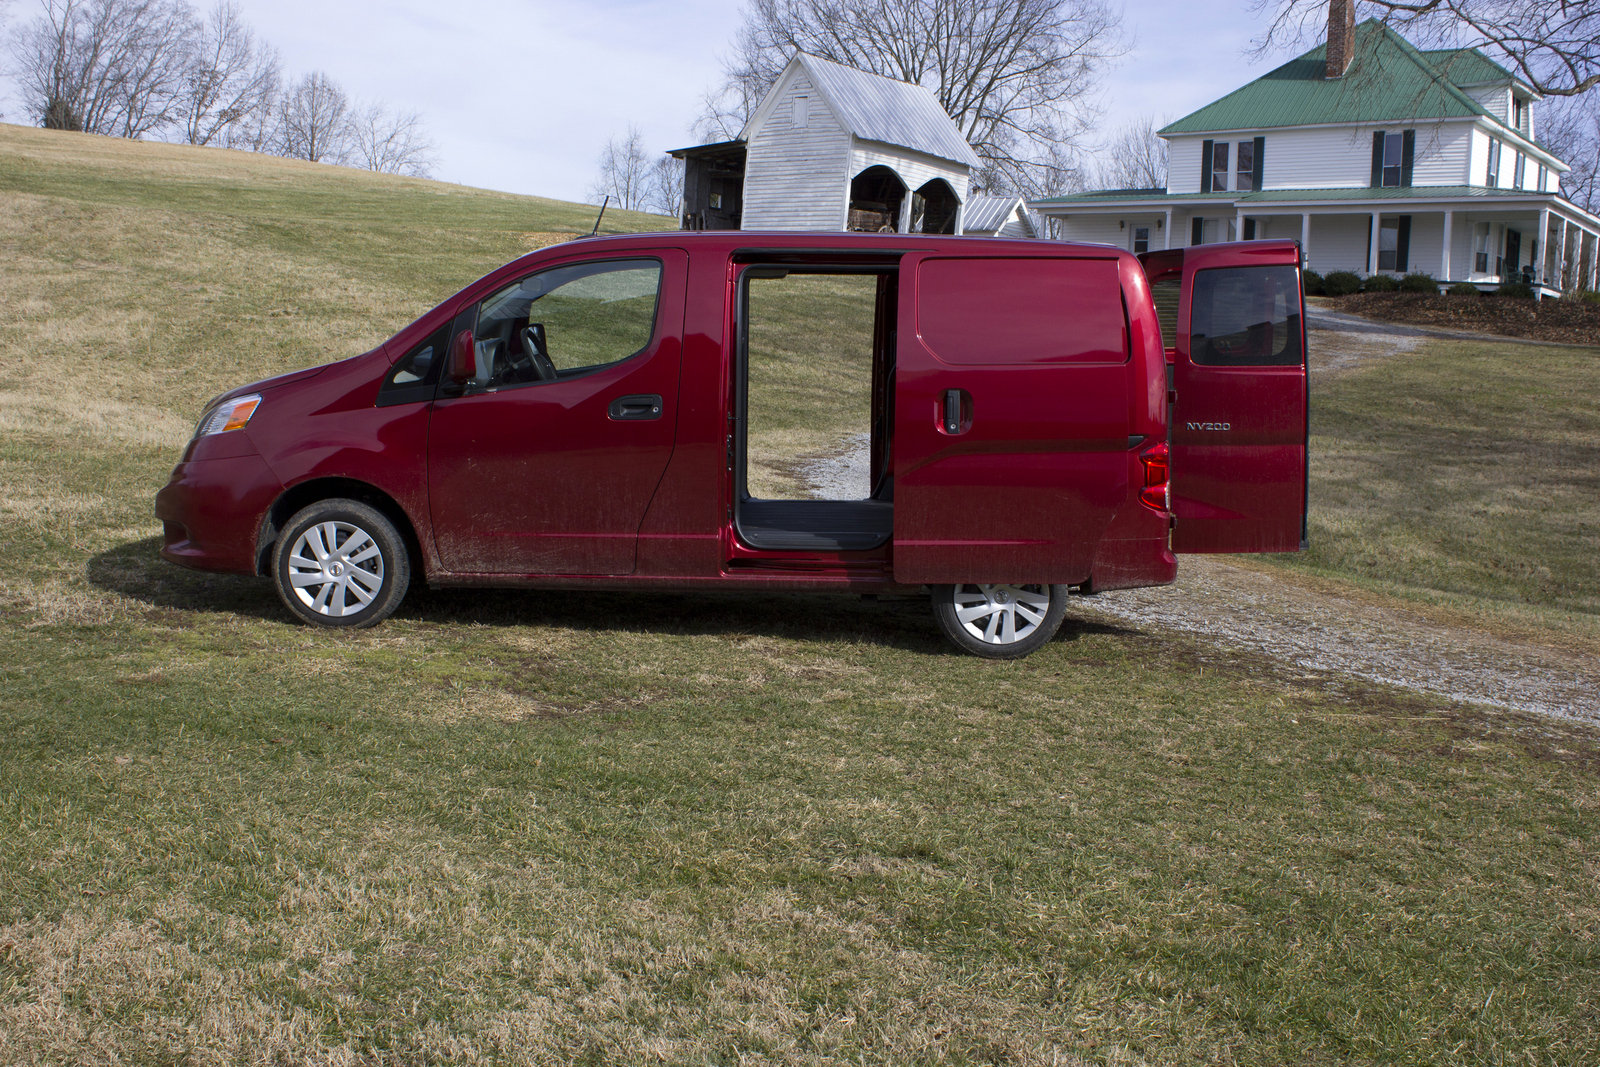 2015 nissan nv200 driven picture 613906 truck review top speed. Black Bedroom Furniture Sets. Home Design Ideas